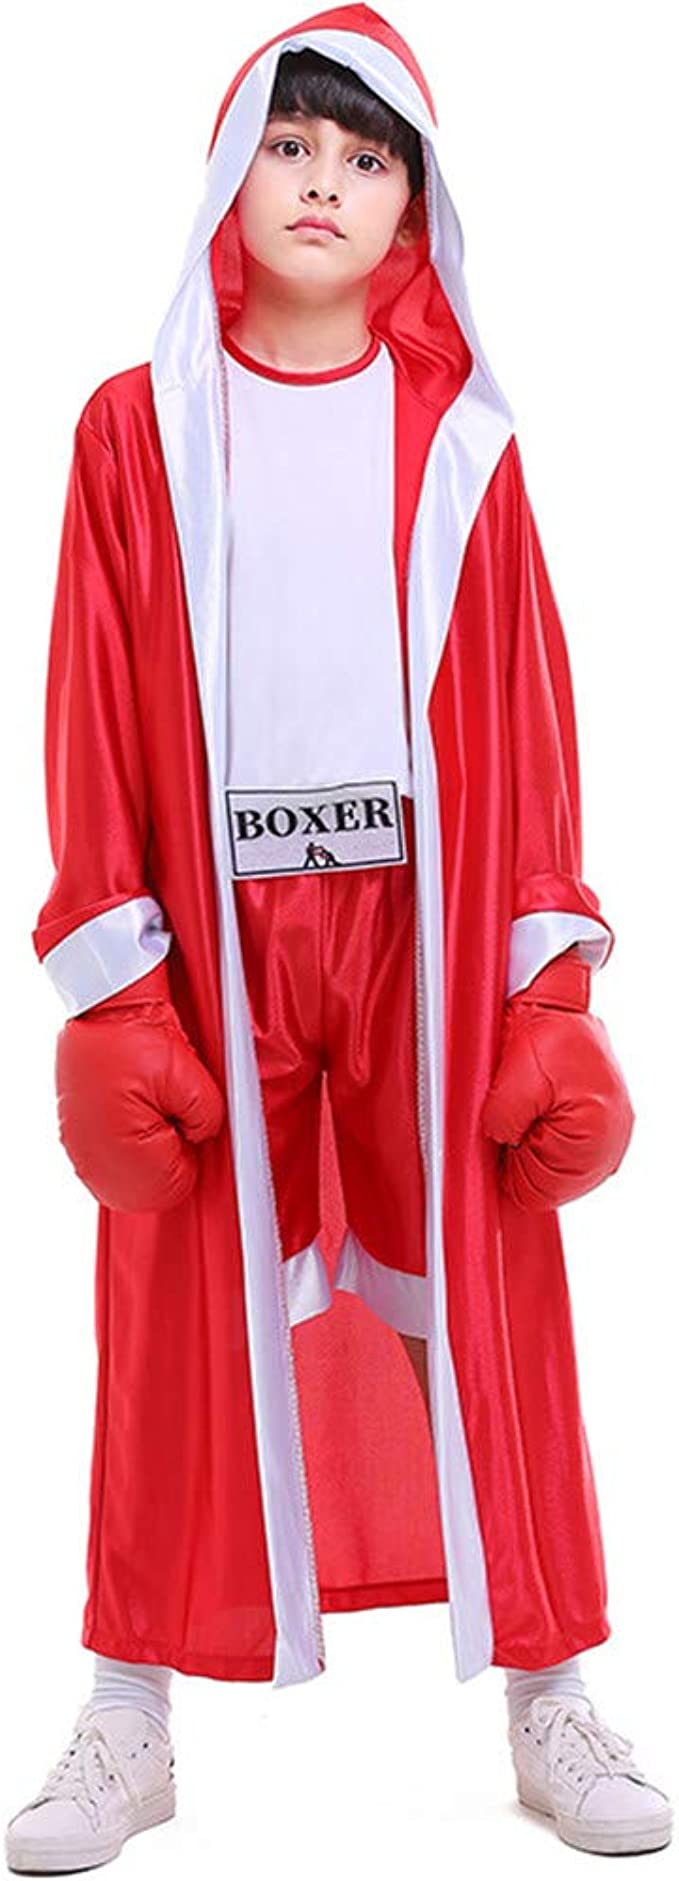 Kids Boys Boxing Costume Red Blue Boxer Cosplay with Boxing Robe Halloween Role Playing Uniform Carnival (Red, L)